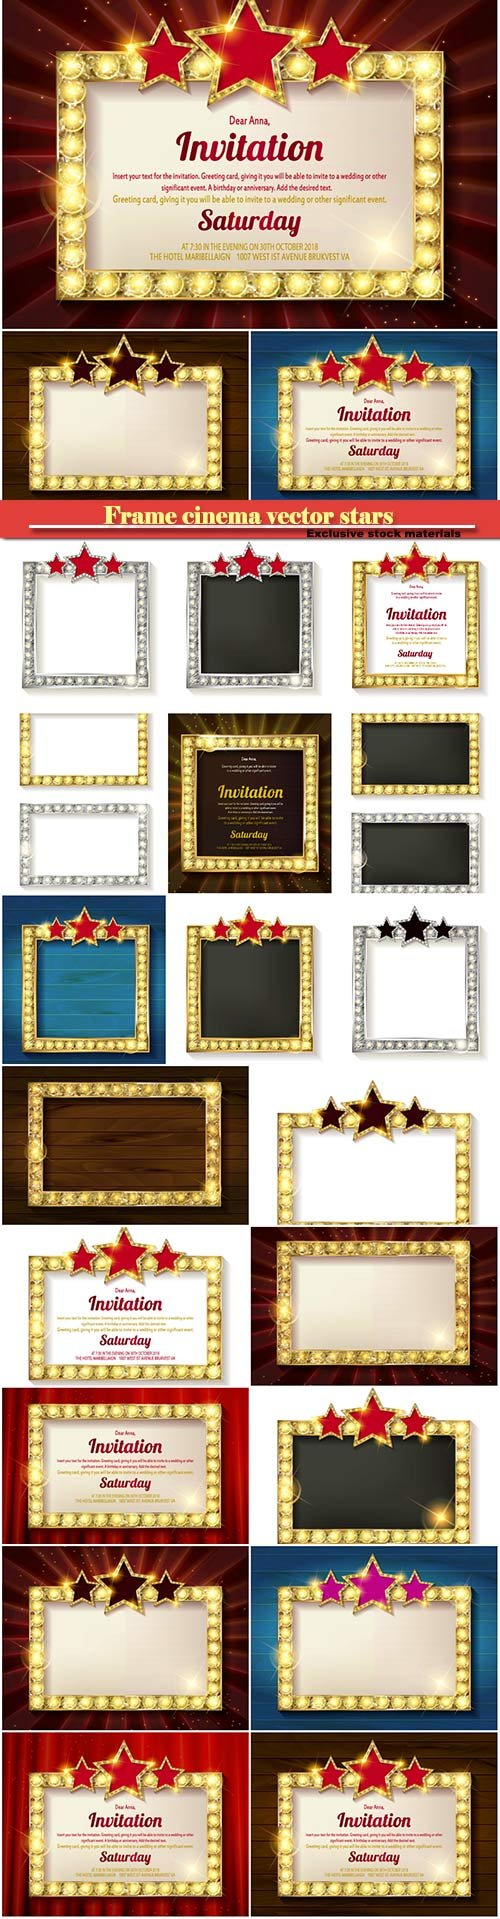 Frame cinema vector stars, invitation with a gold decoration